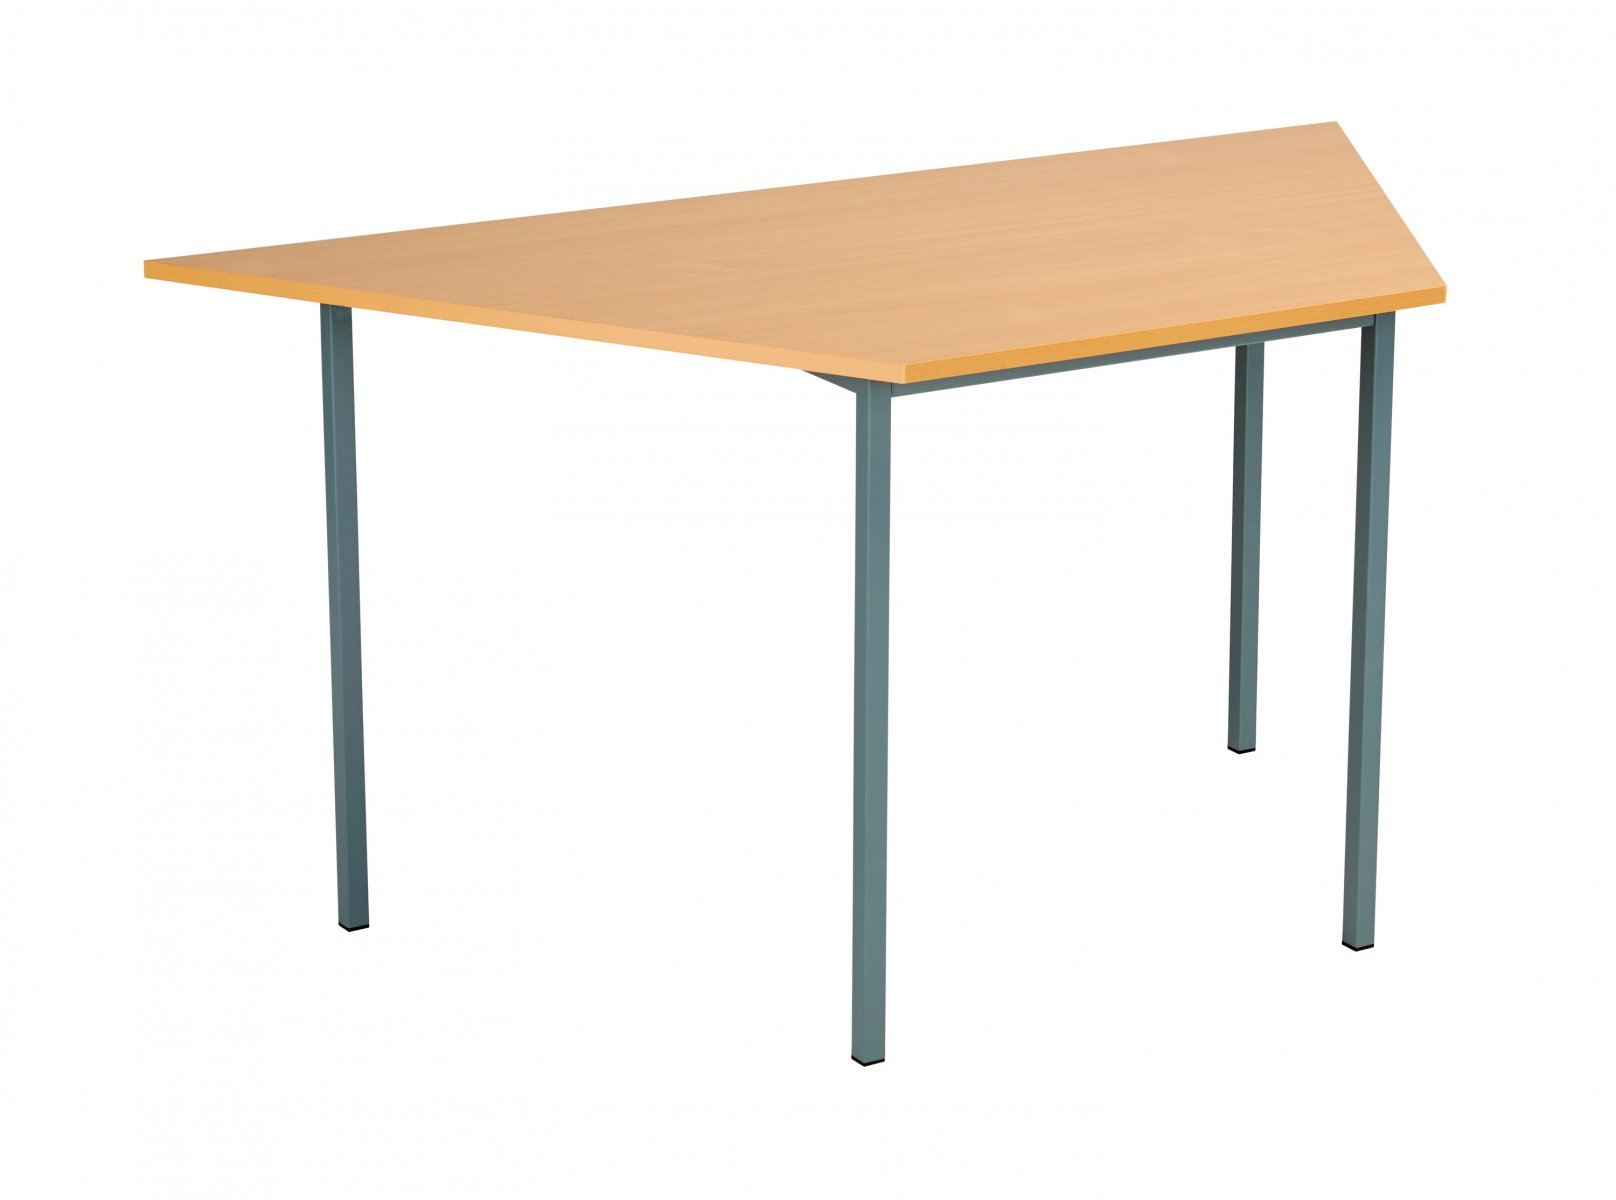 Eco 18 Trapezoidal 150 Multi-Purpose Table - Beech